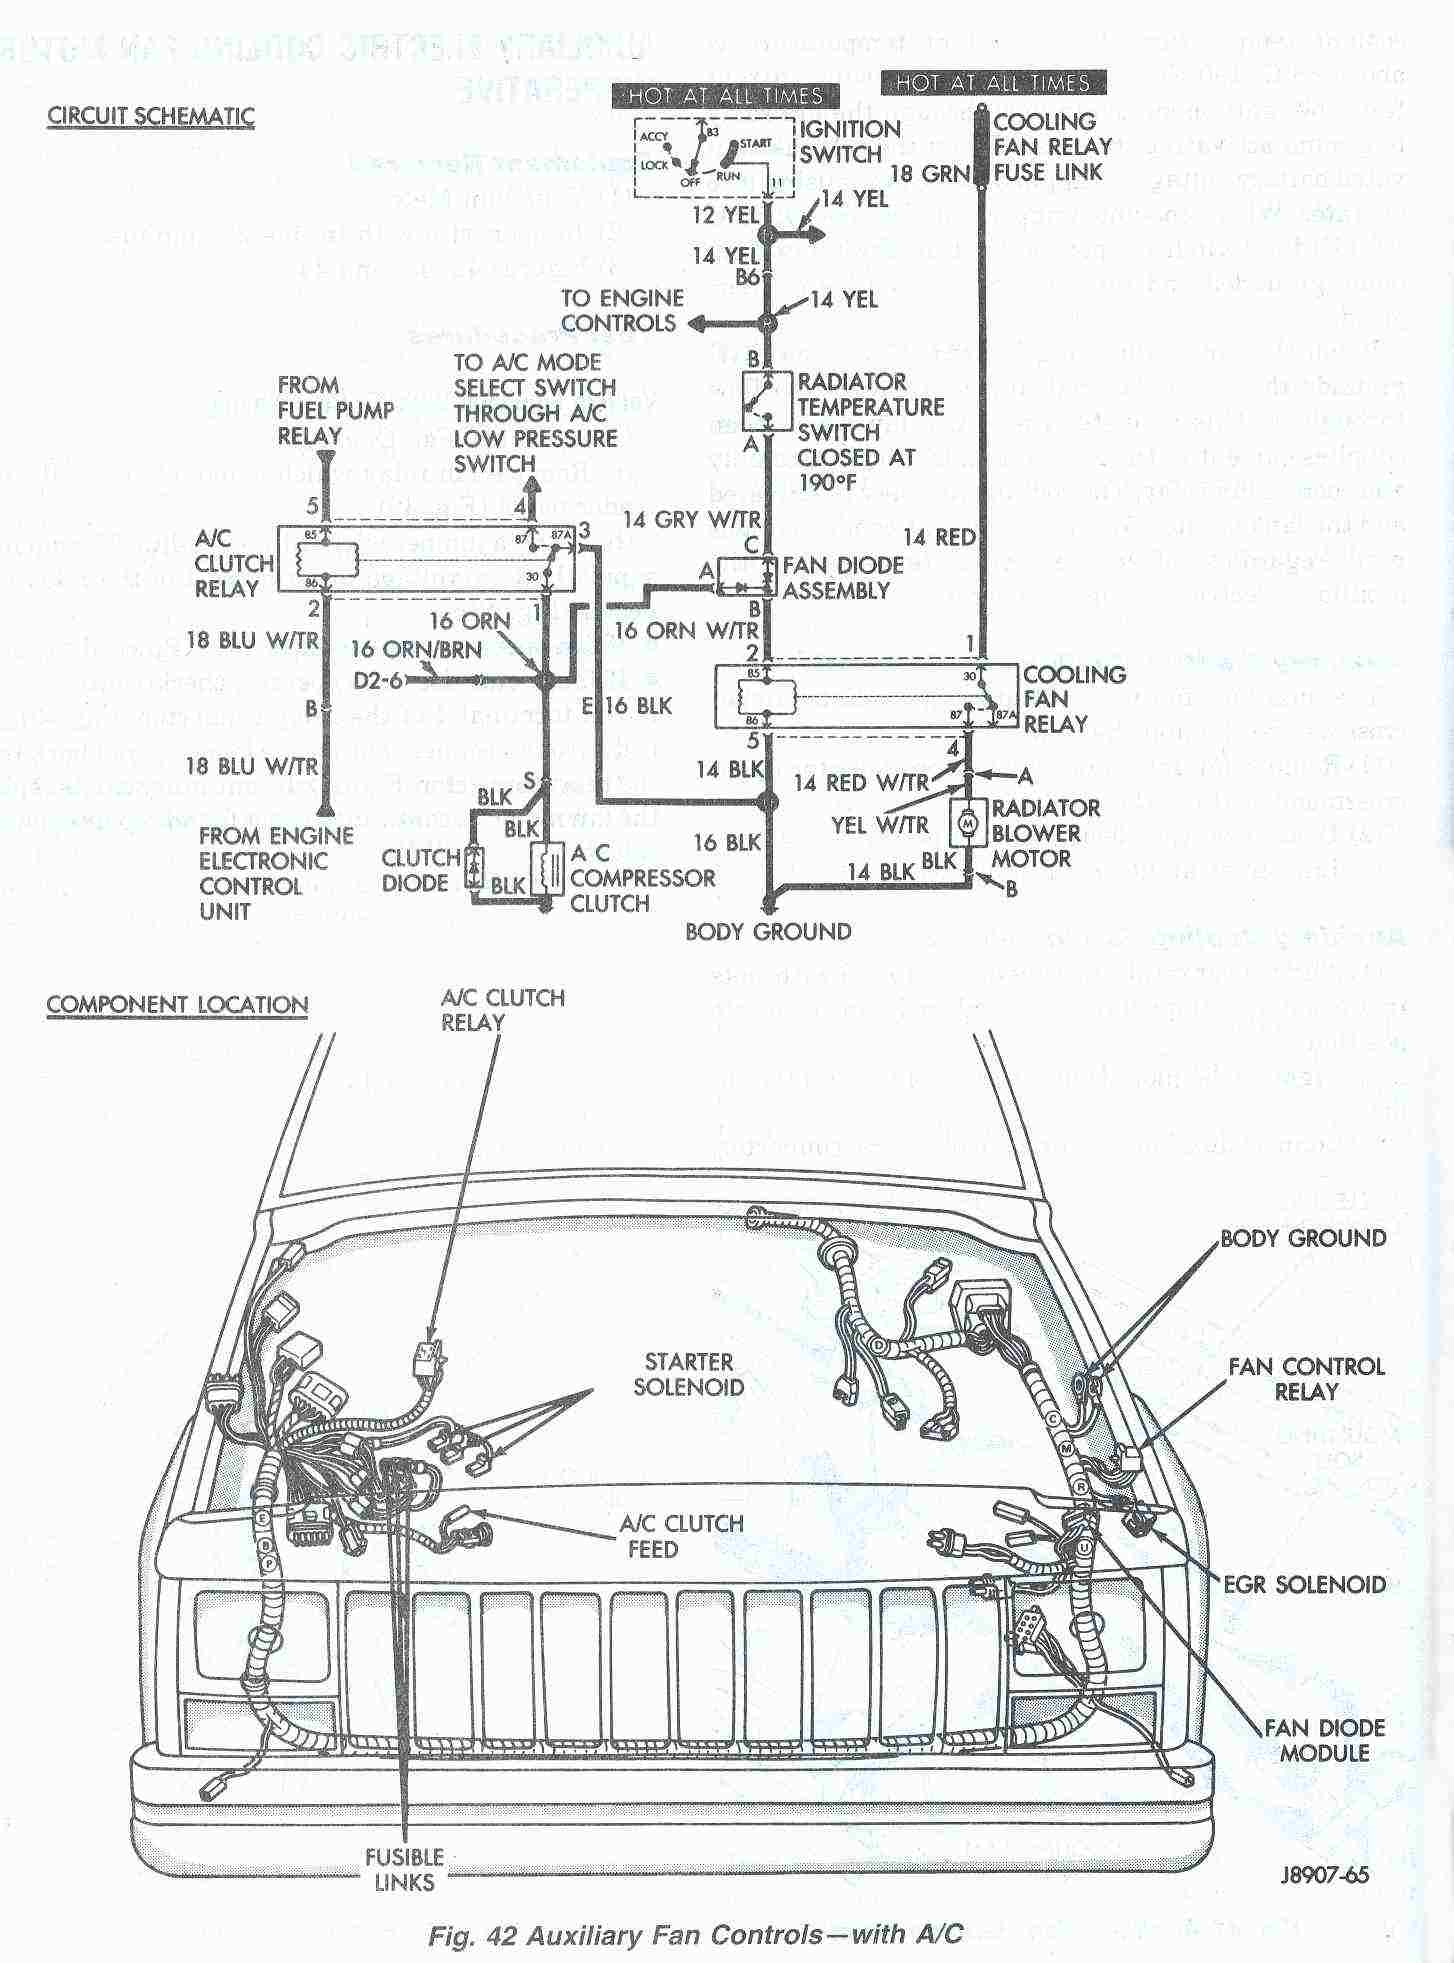 Auxiliary_Fan_Schematic_Fig_42 jeep cherokee cooling system electric cooling fan wiring diagram for electric fan relay at webbmarketing.co